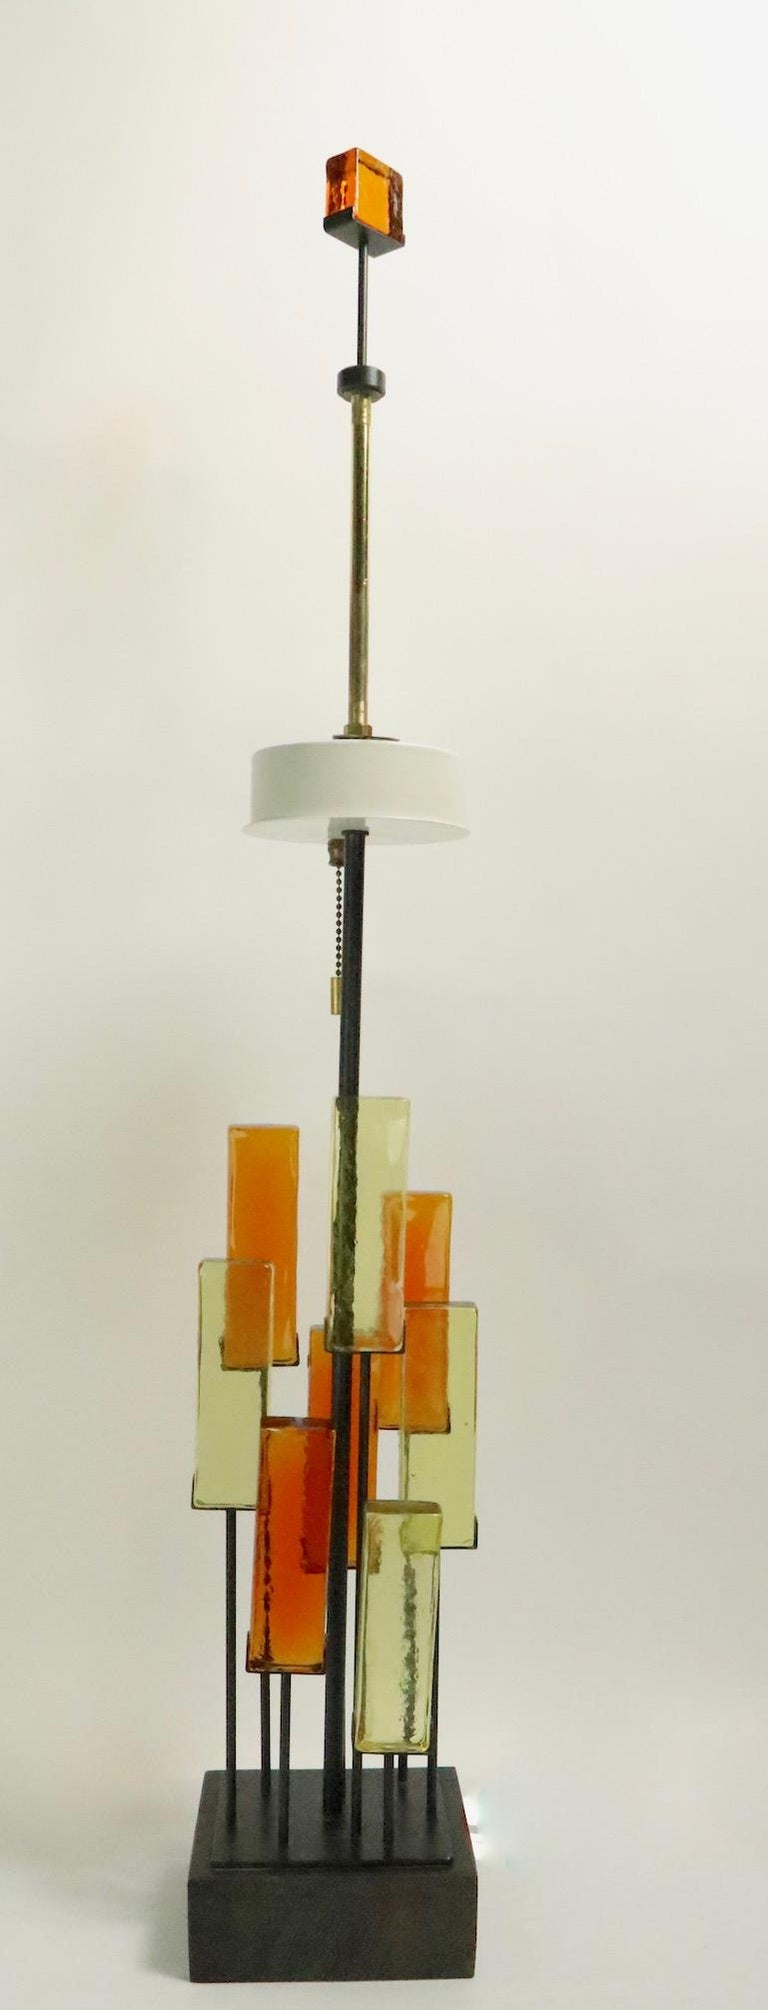 Brutalist Glass Block Table Lamp Attributed to Thurston for Lightolier For Sale 5